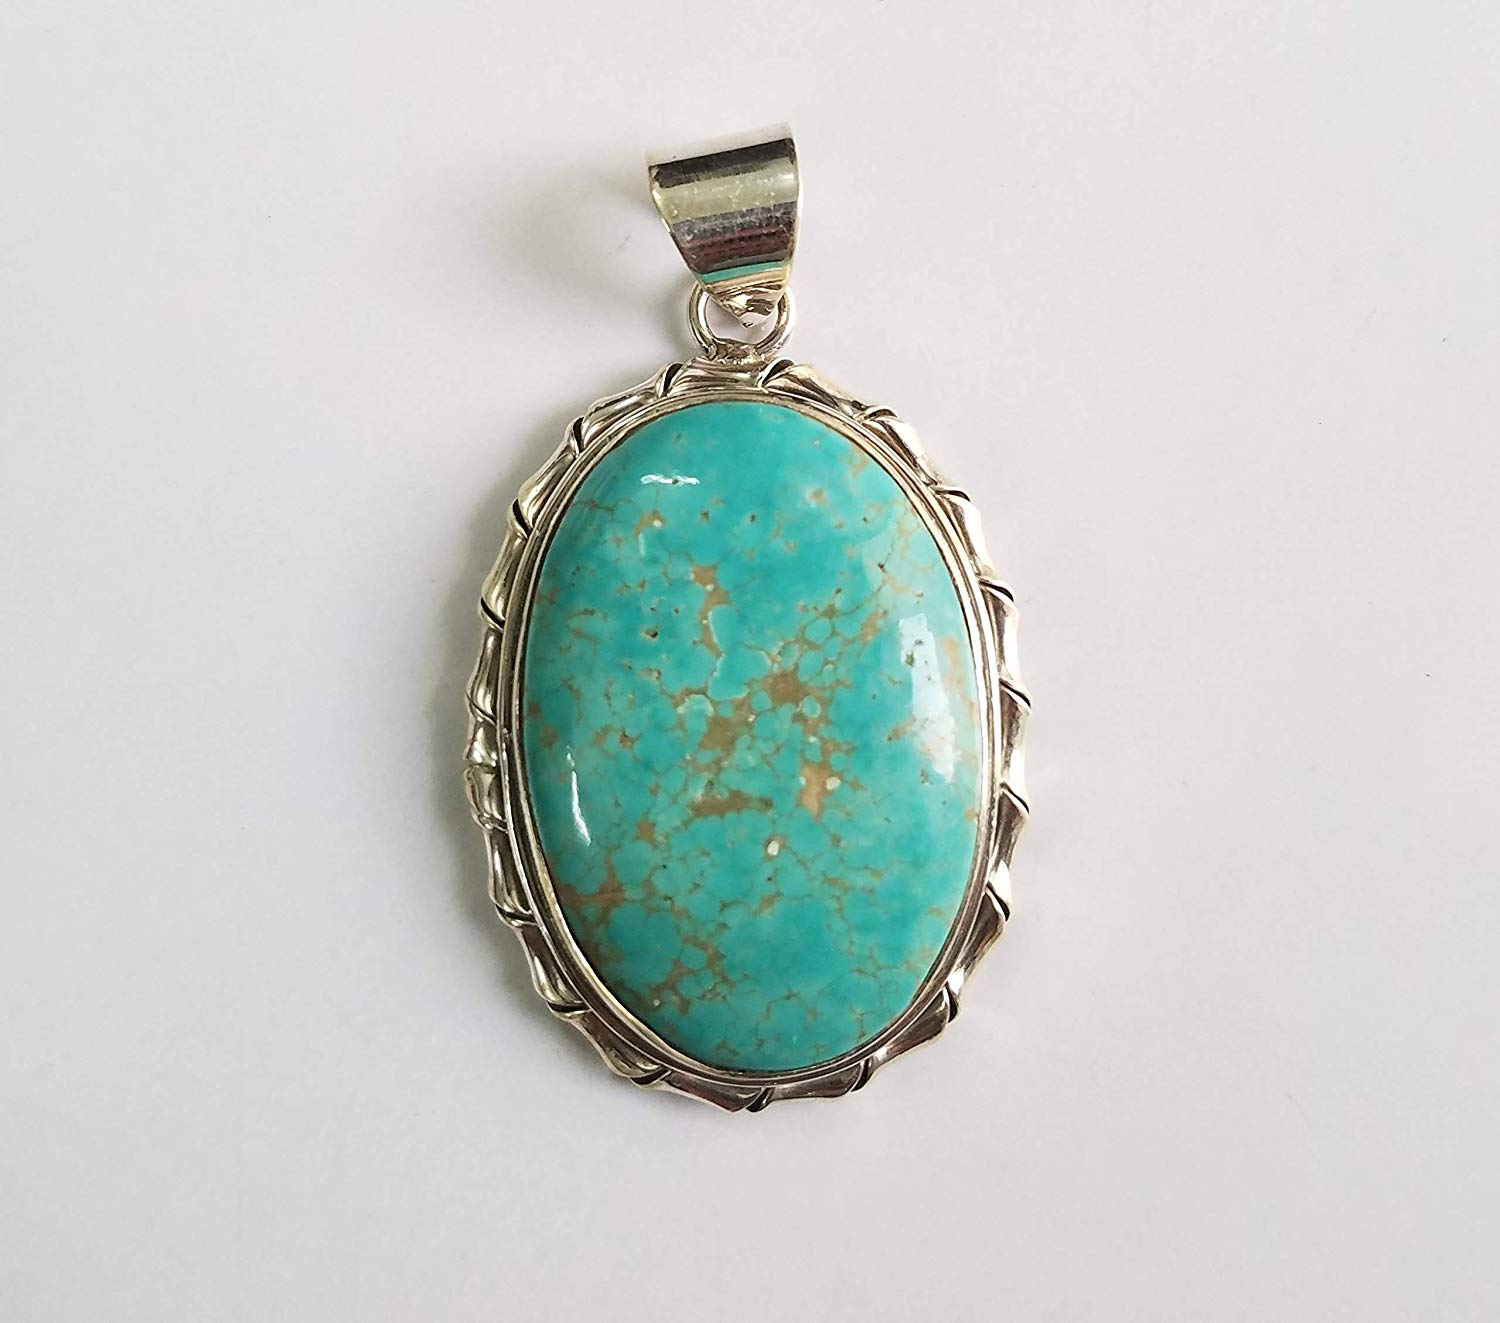 Natural Turquoise Pendant 925 Sterling Silver One Of A Kind Ocean Pendant Ethnic Pendant Fashion Handmade Pendant Extraordinary Pendant Extremely Unusual Pendant December Birthstone Anniversary Gift